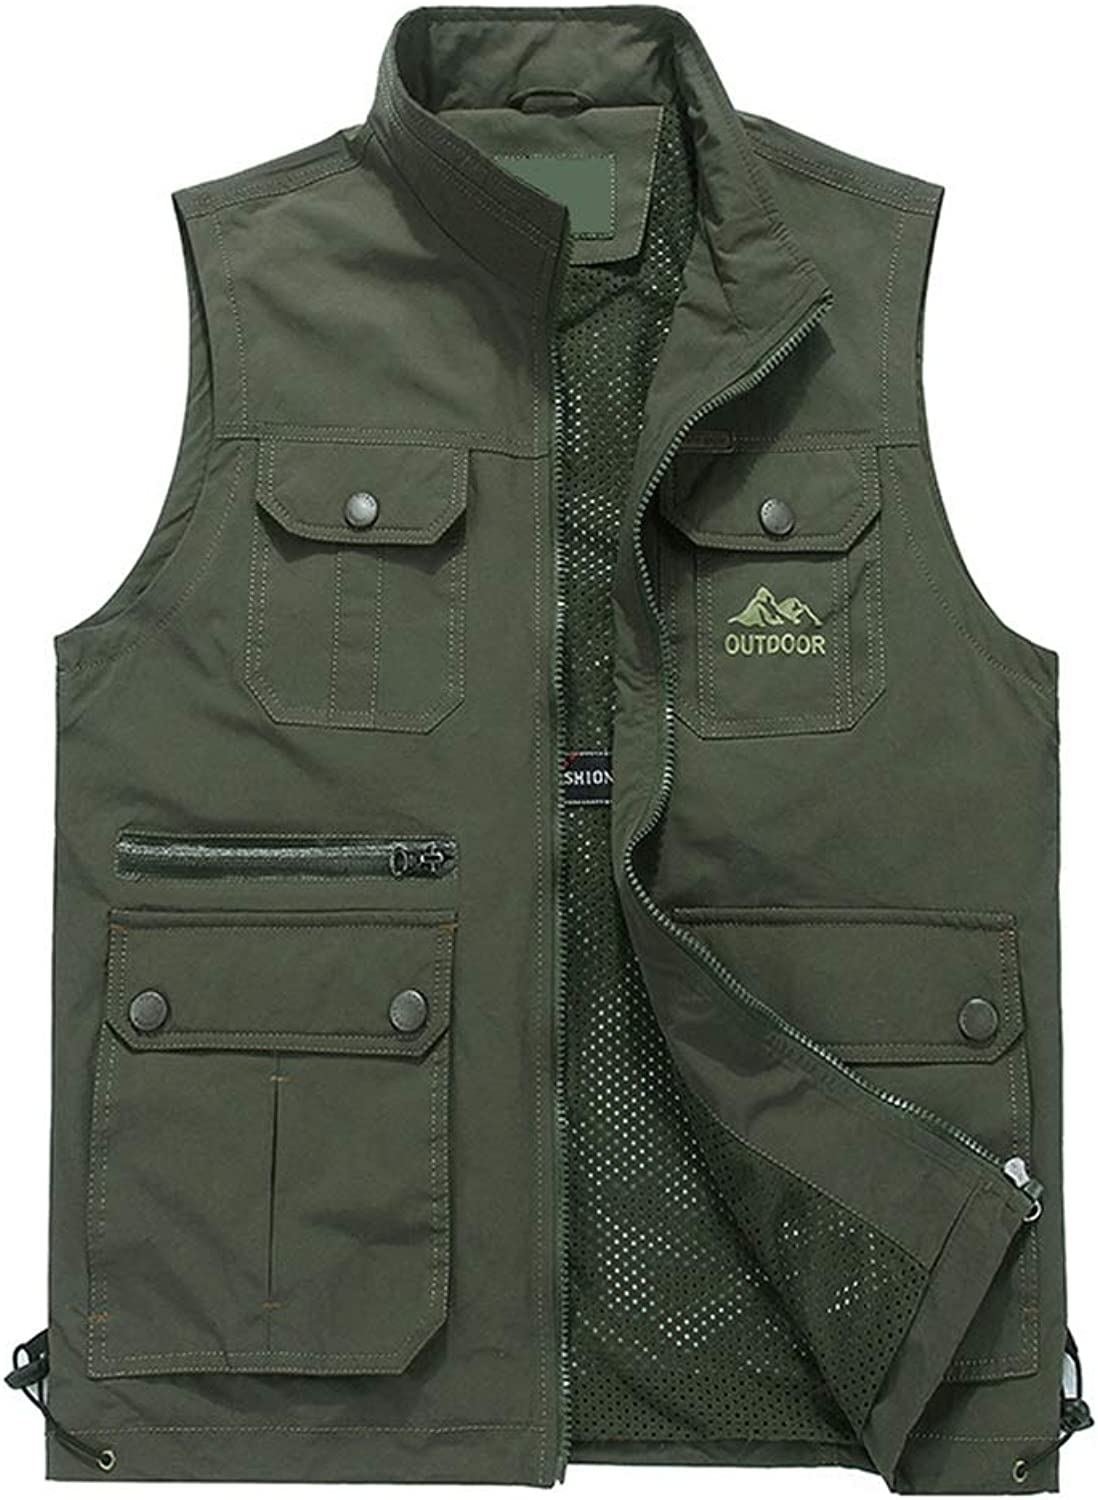 Vest Photography Outdoor Fishing Men's Cotton Shoulder Autumn Loose Large Size Sleeveless Jacket Male Three colors XMJ (color   ArmyGreen, Size   4XL)